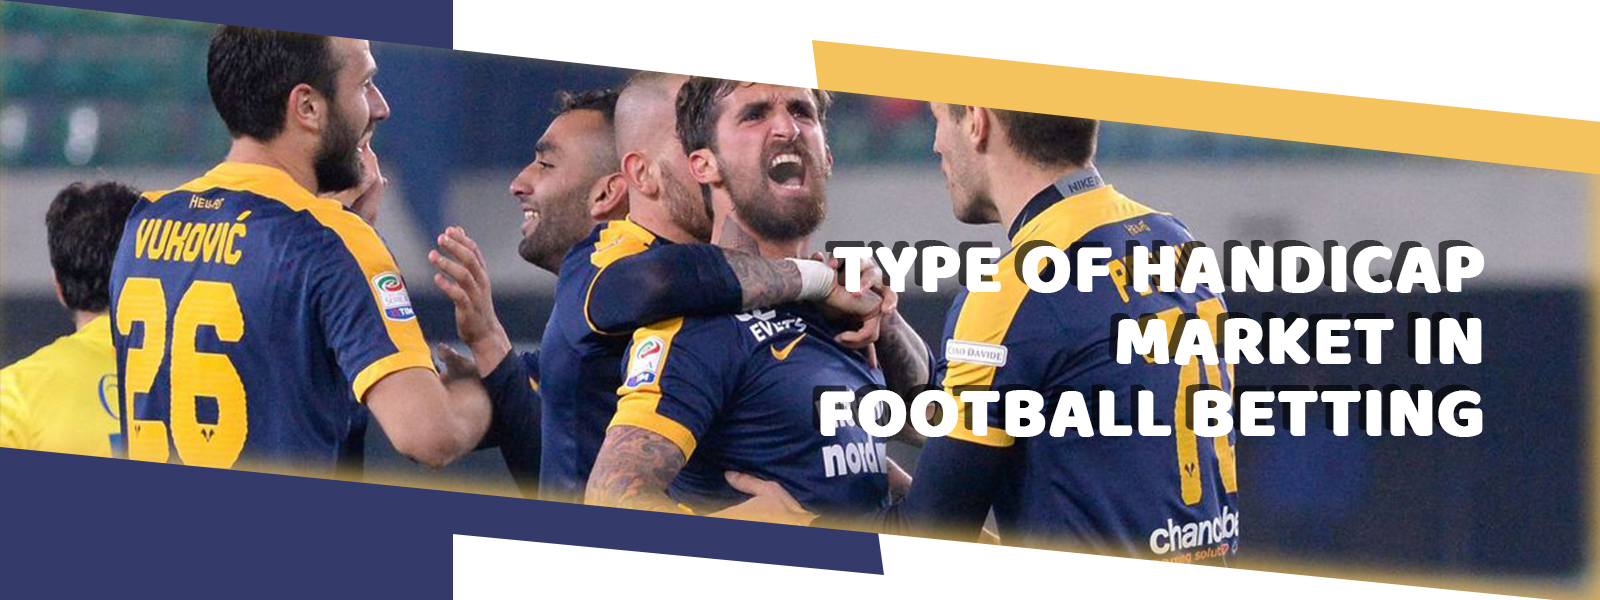 Type Of Handicap Market In Football Betting